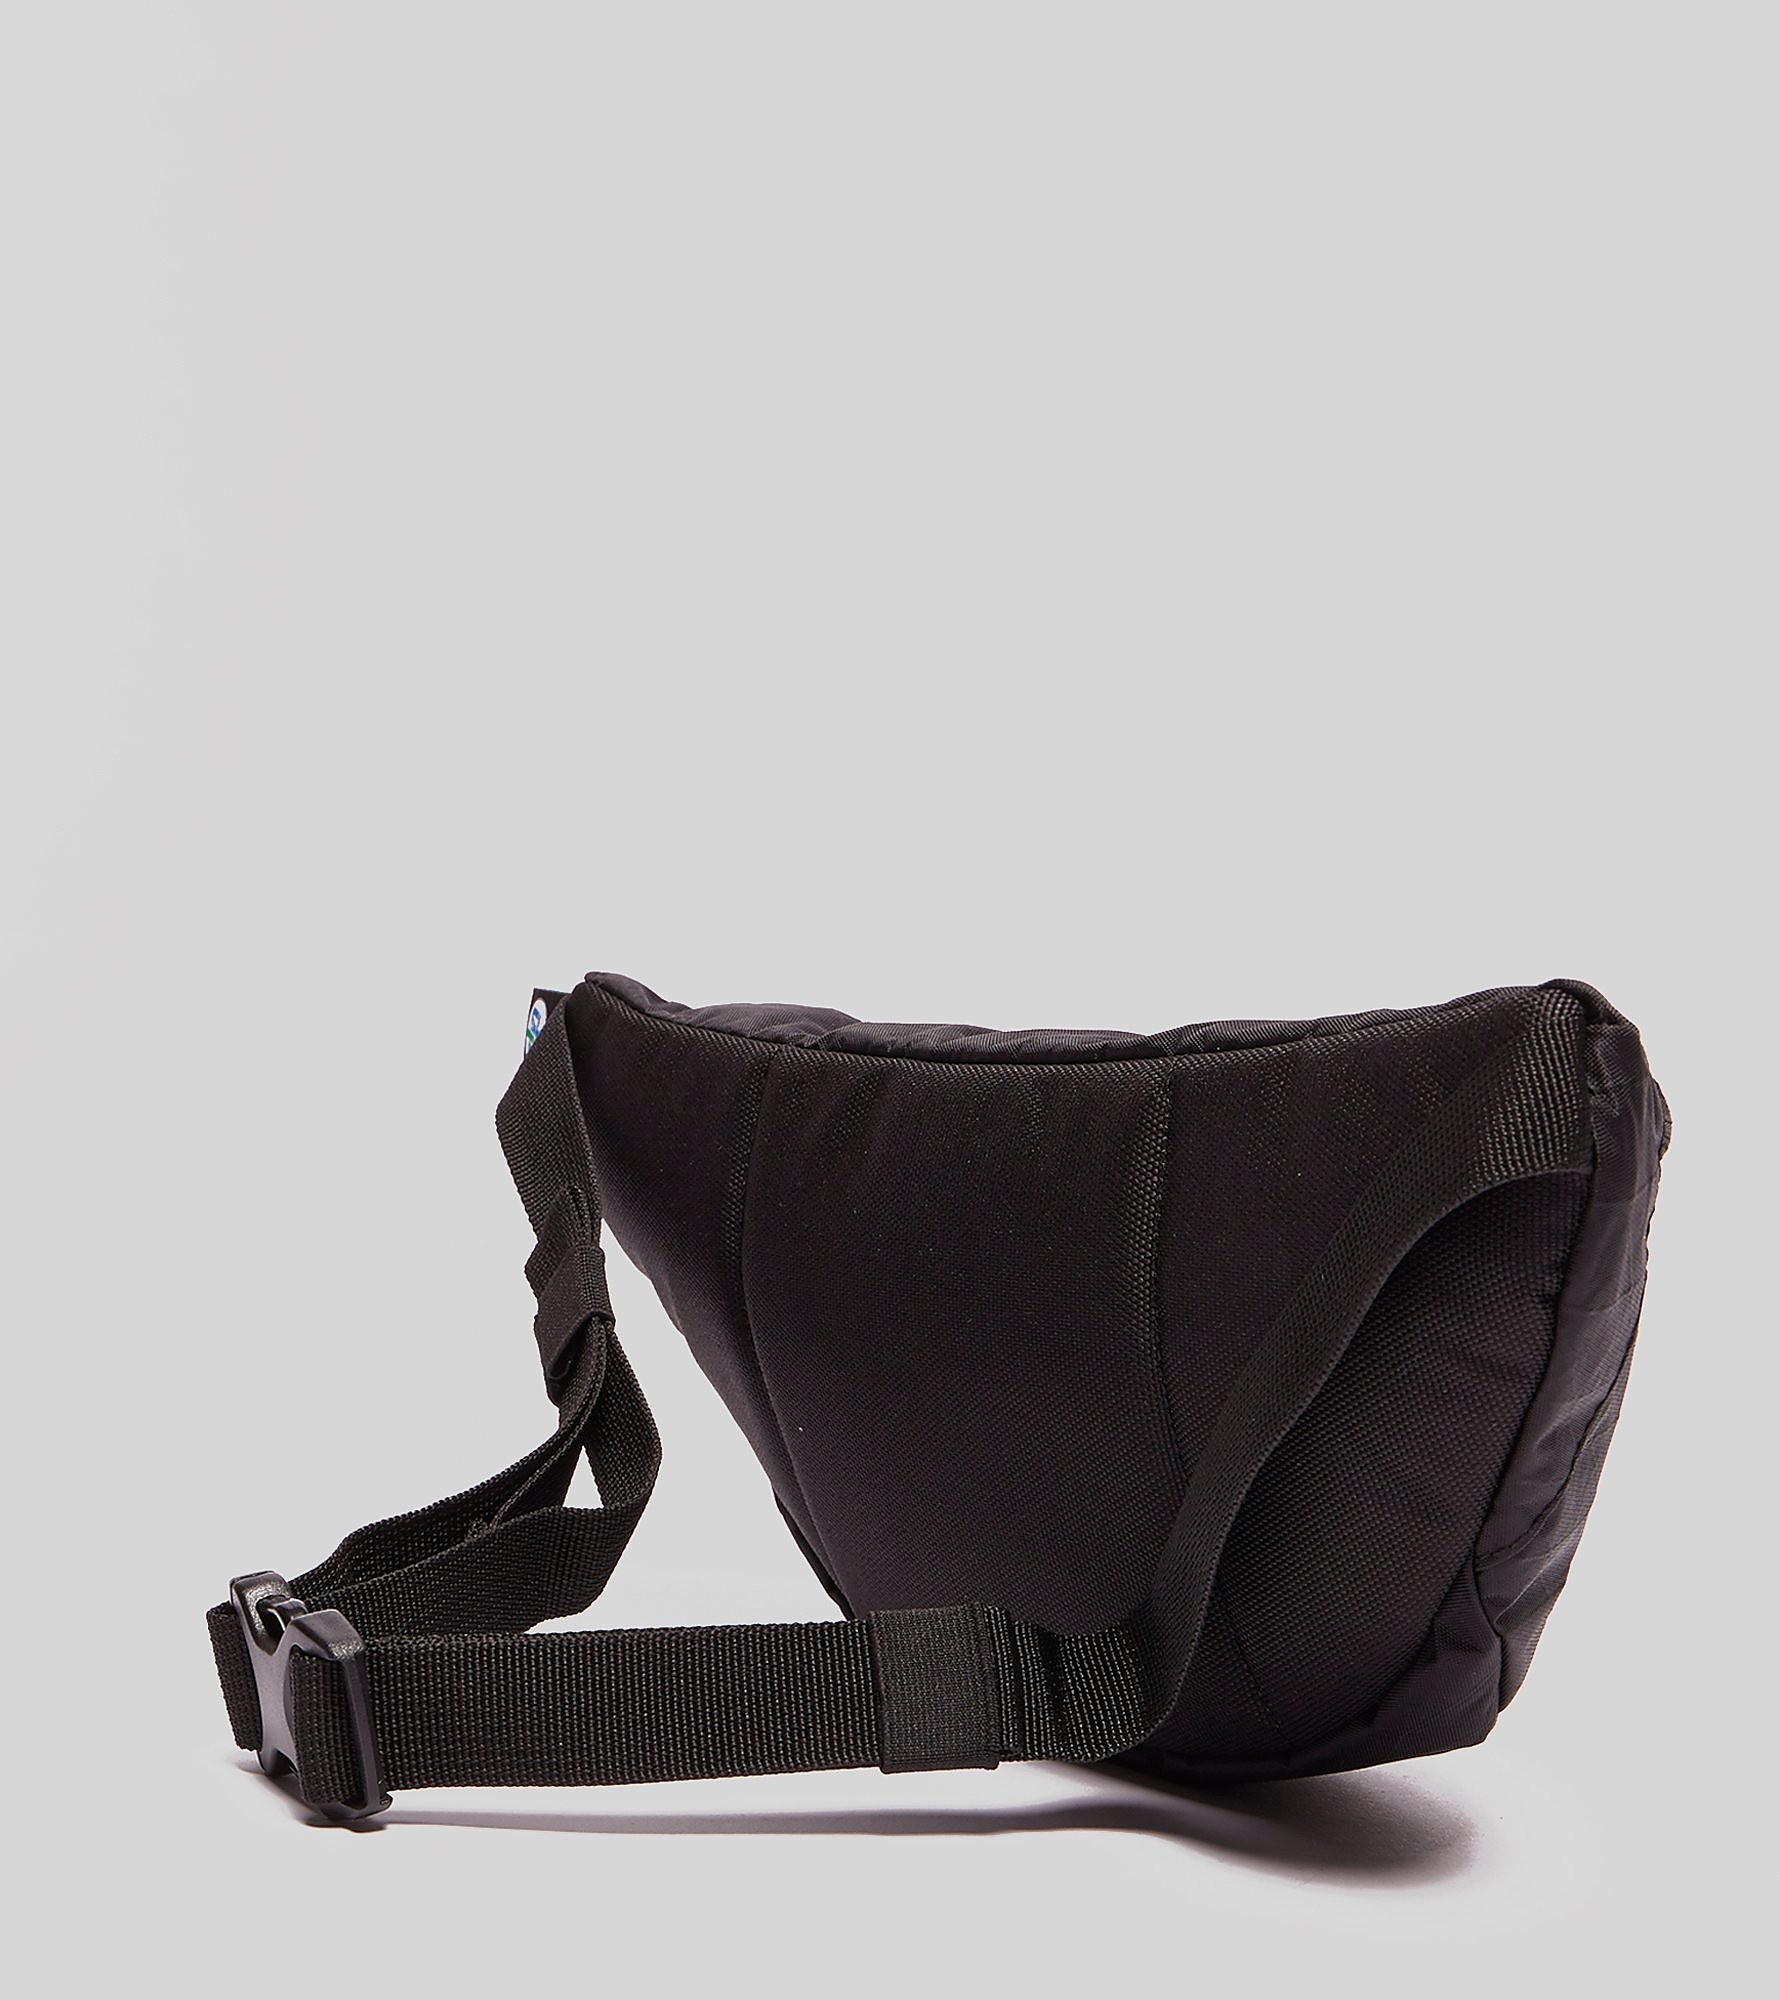 Wild Things Westbag Hip Pack